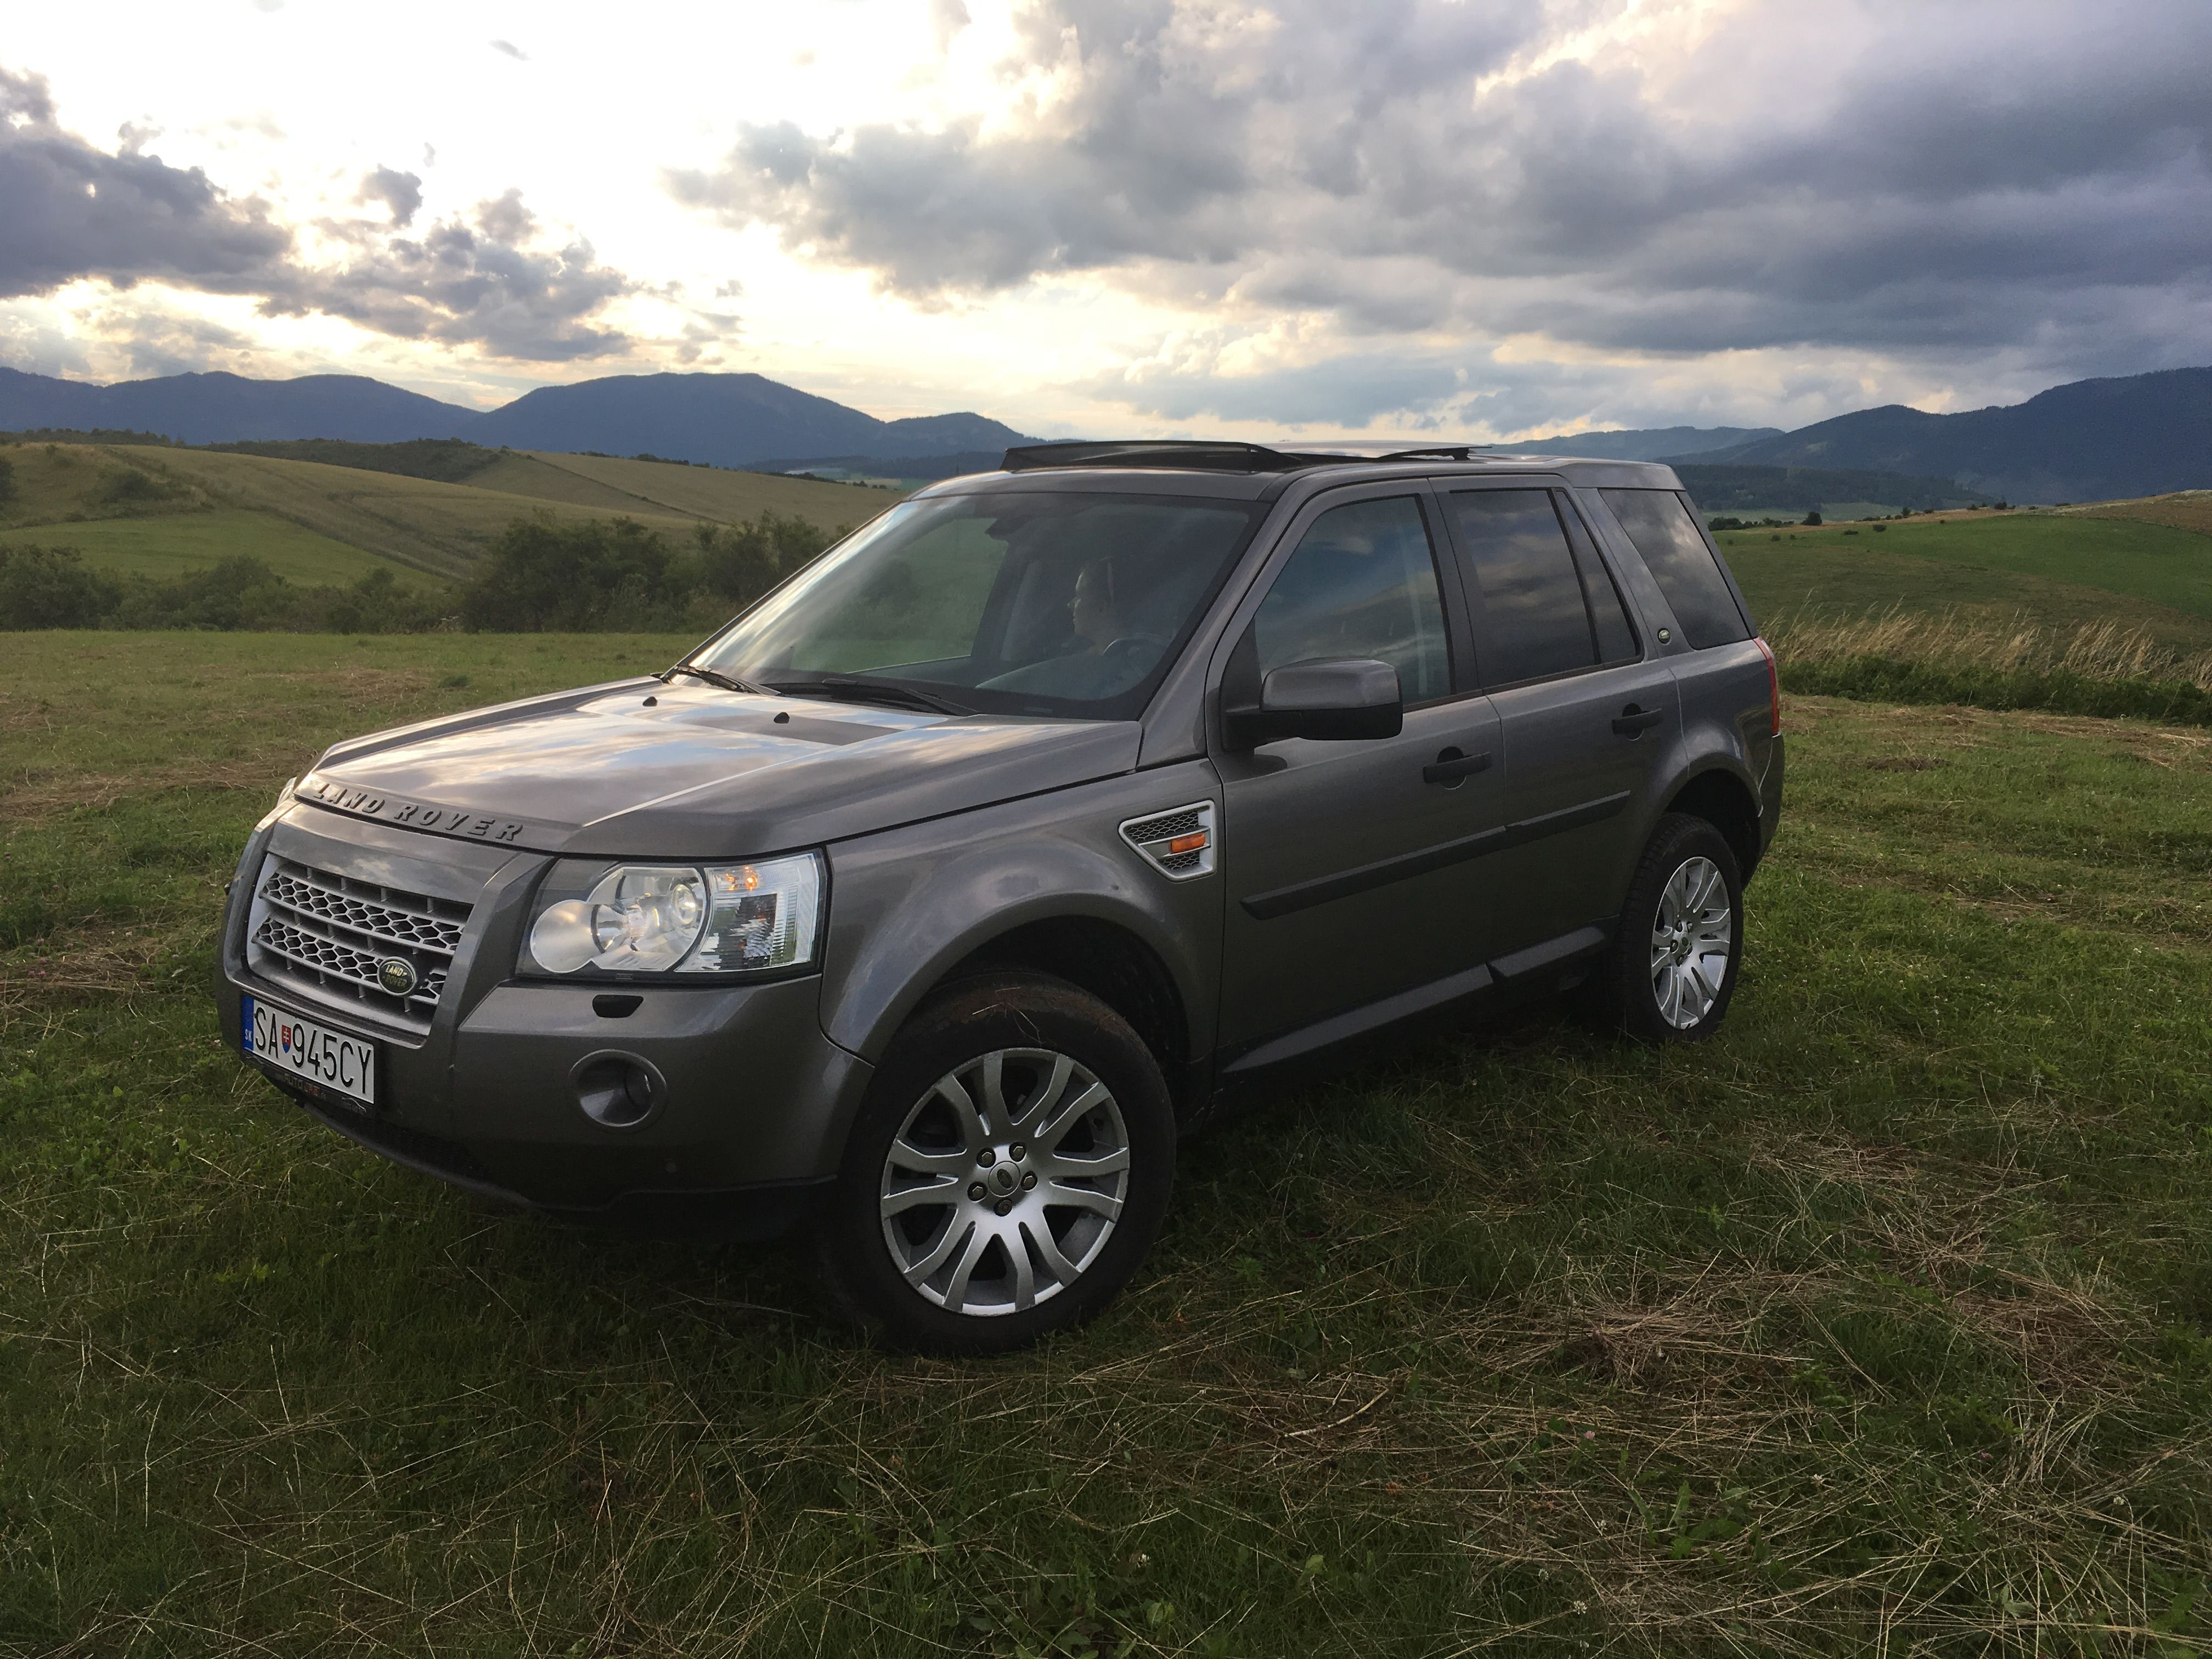 title vehicles qatar img compressor landrover rover copy living land silver suspension